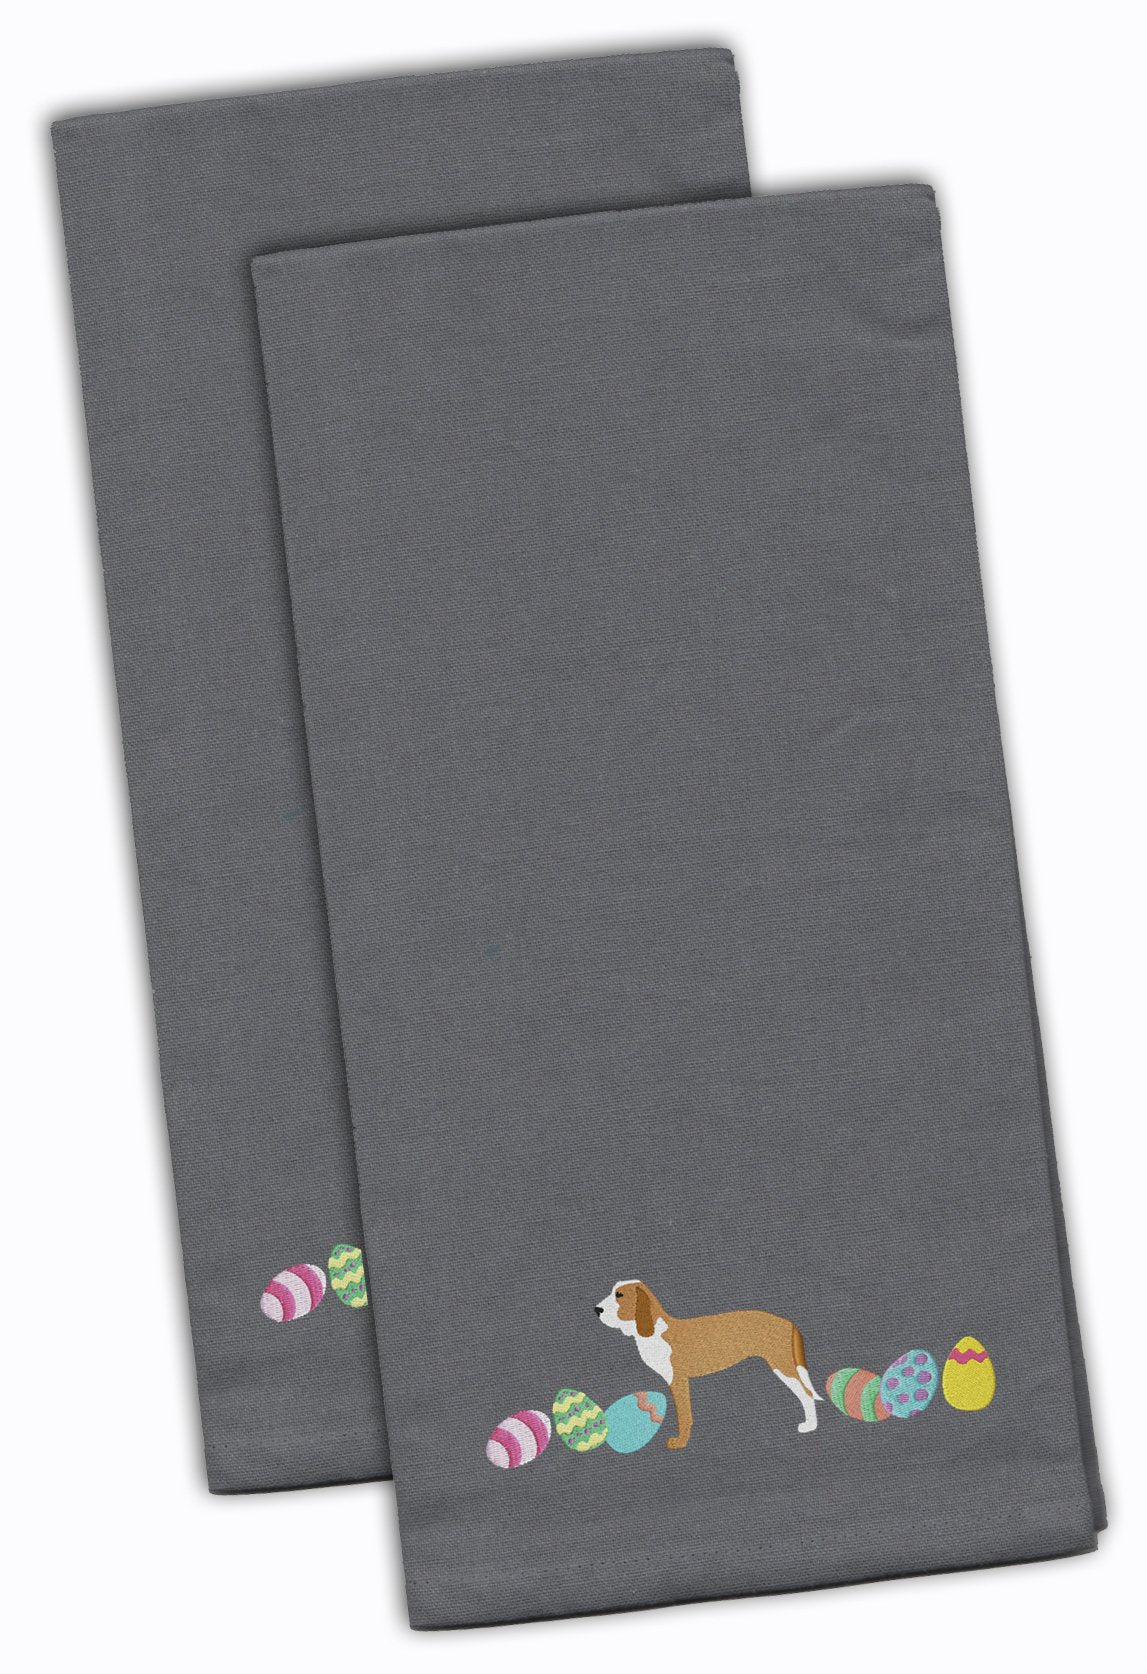 Sabueso Espanol Easter Gray Embroidered Kitchen Towel Set of 2 CK1688GYTWE by Caroline's Treasures